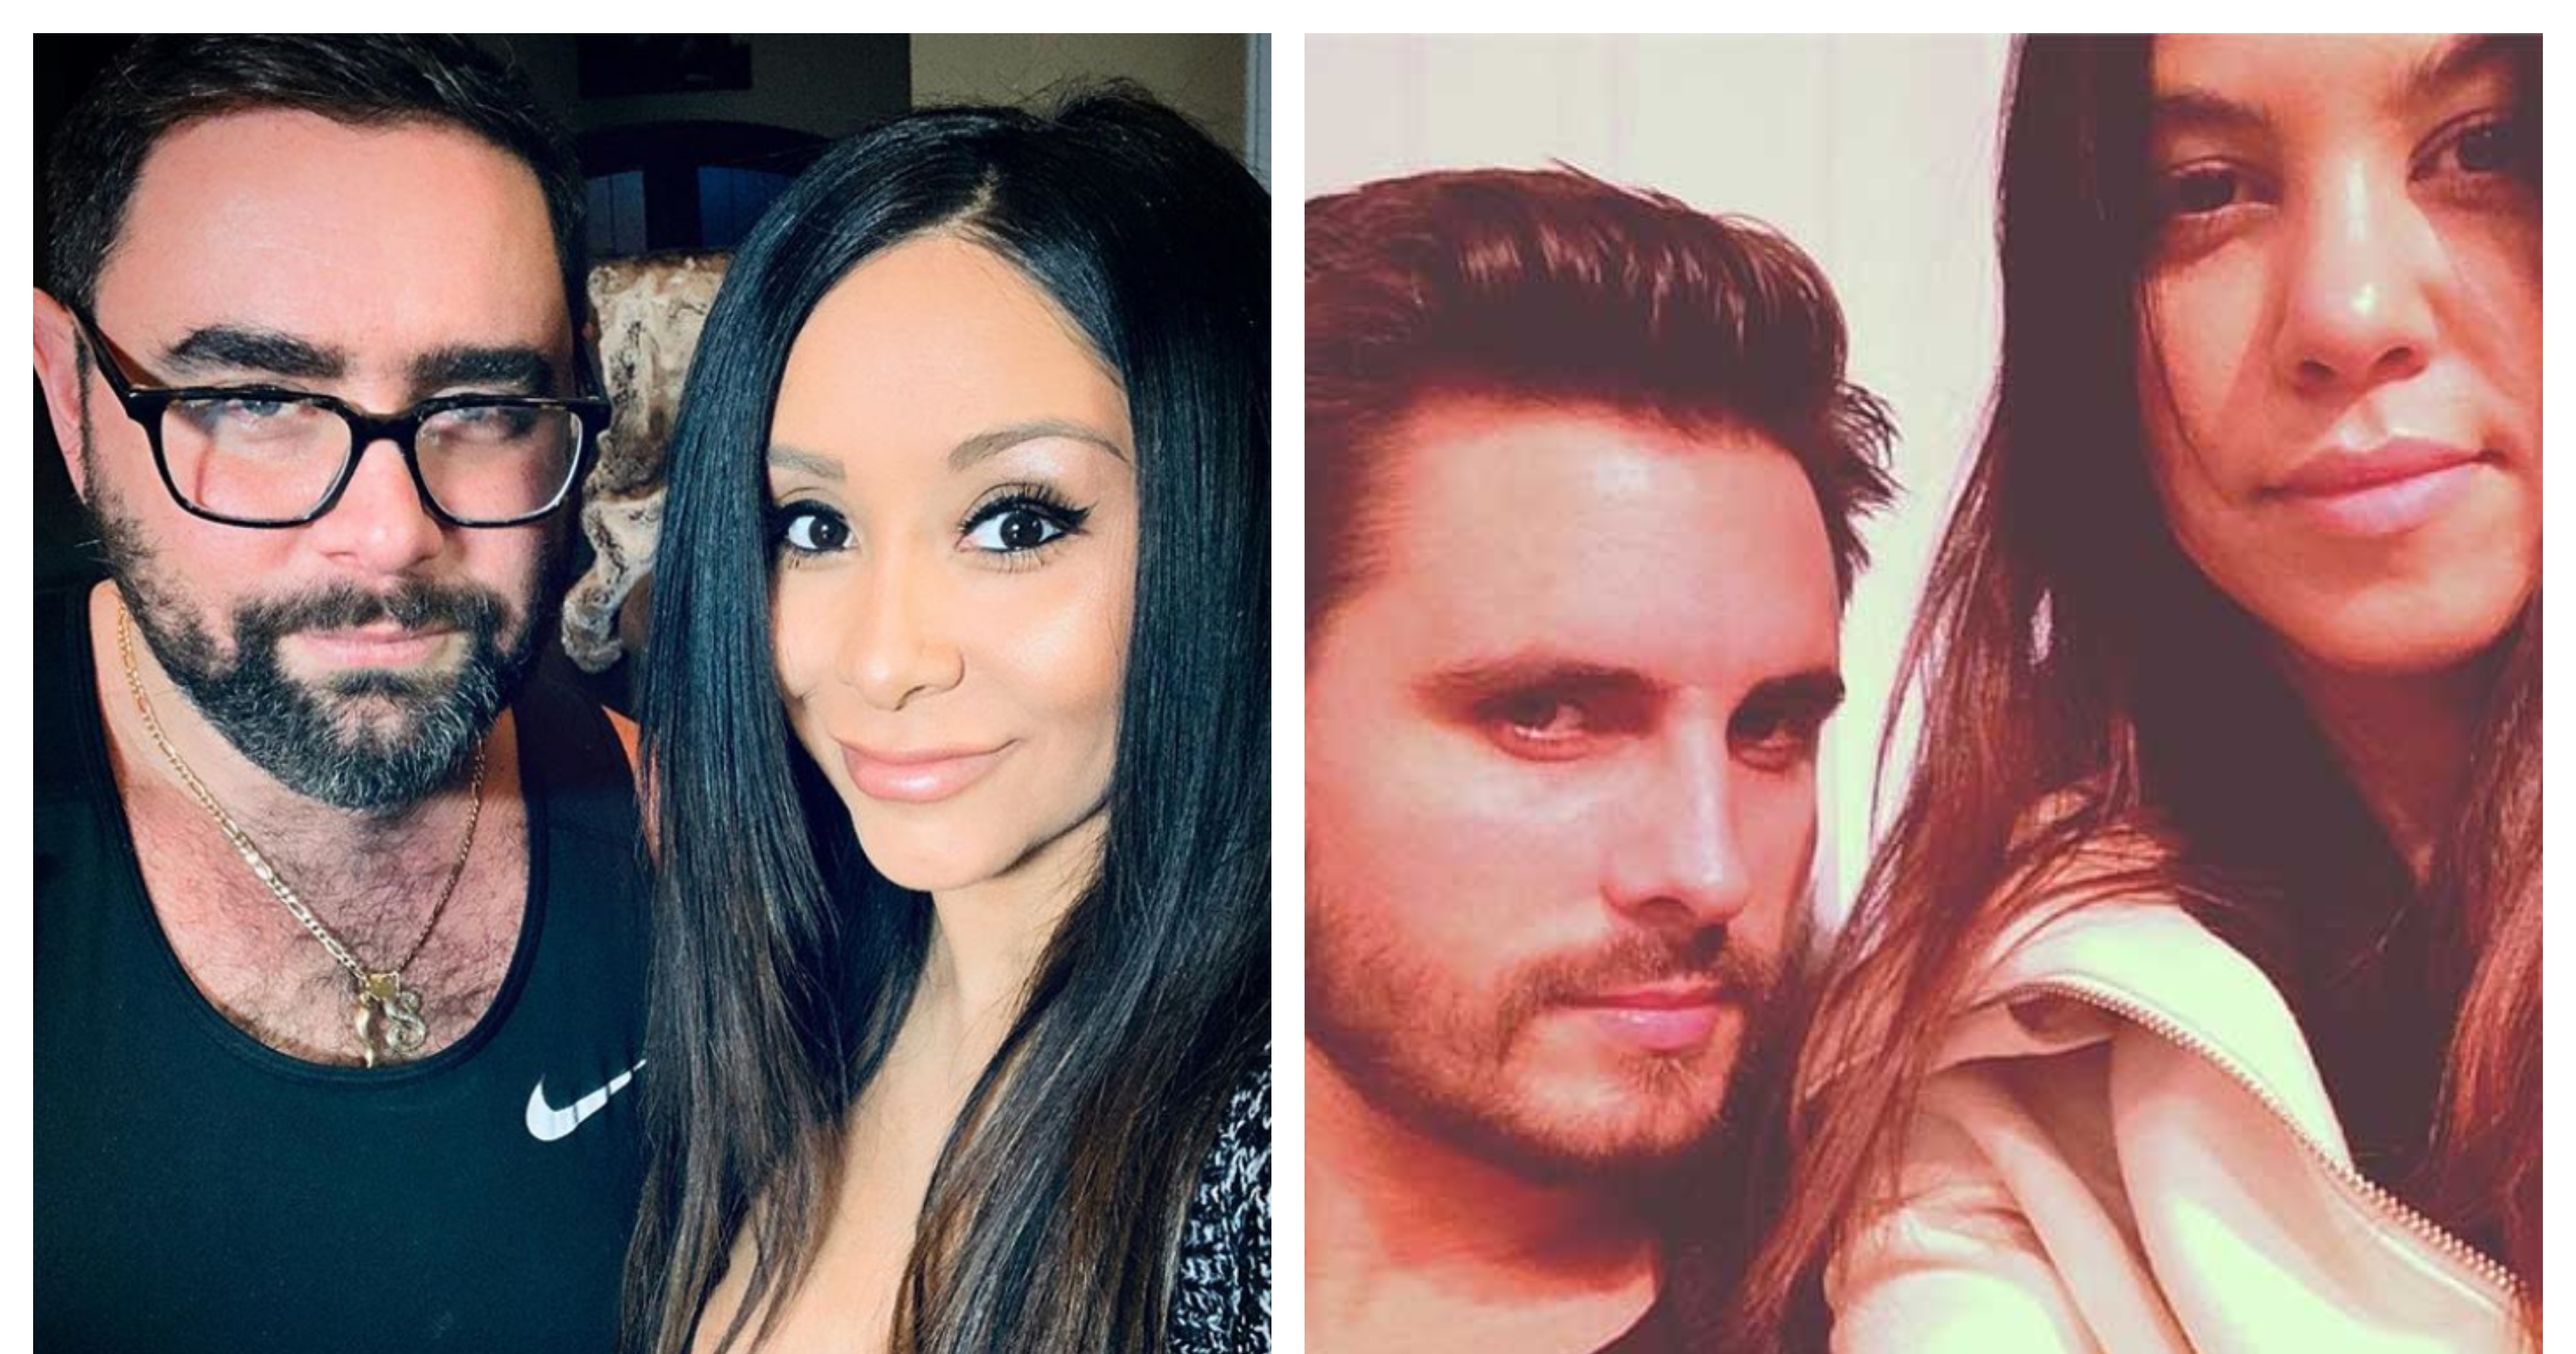 LOL: Snooki Jokes That She and BFF Joey Are the 'Walmart Version' of Scott and Kourtney